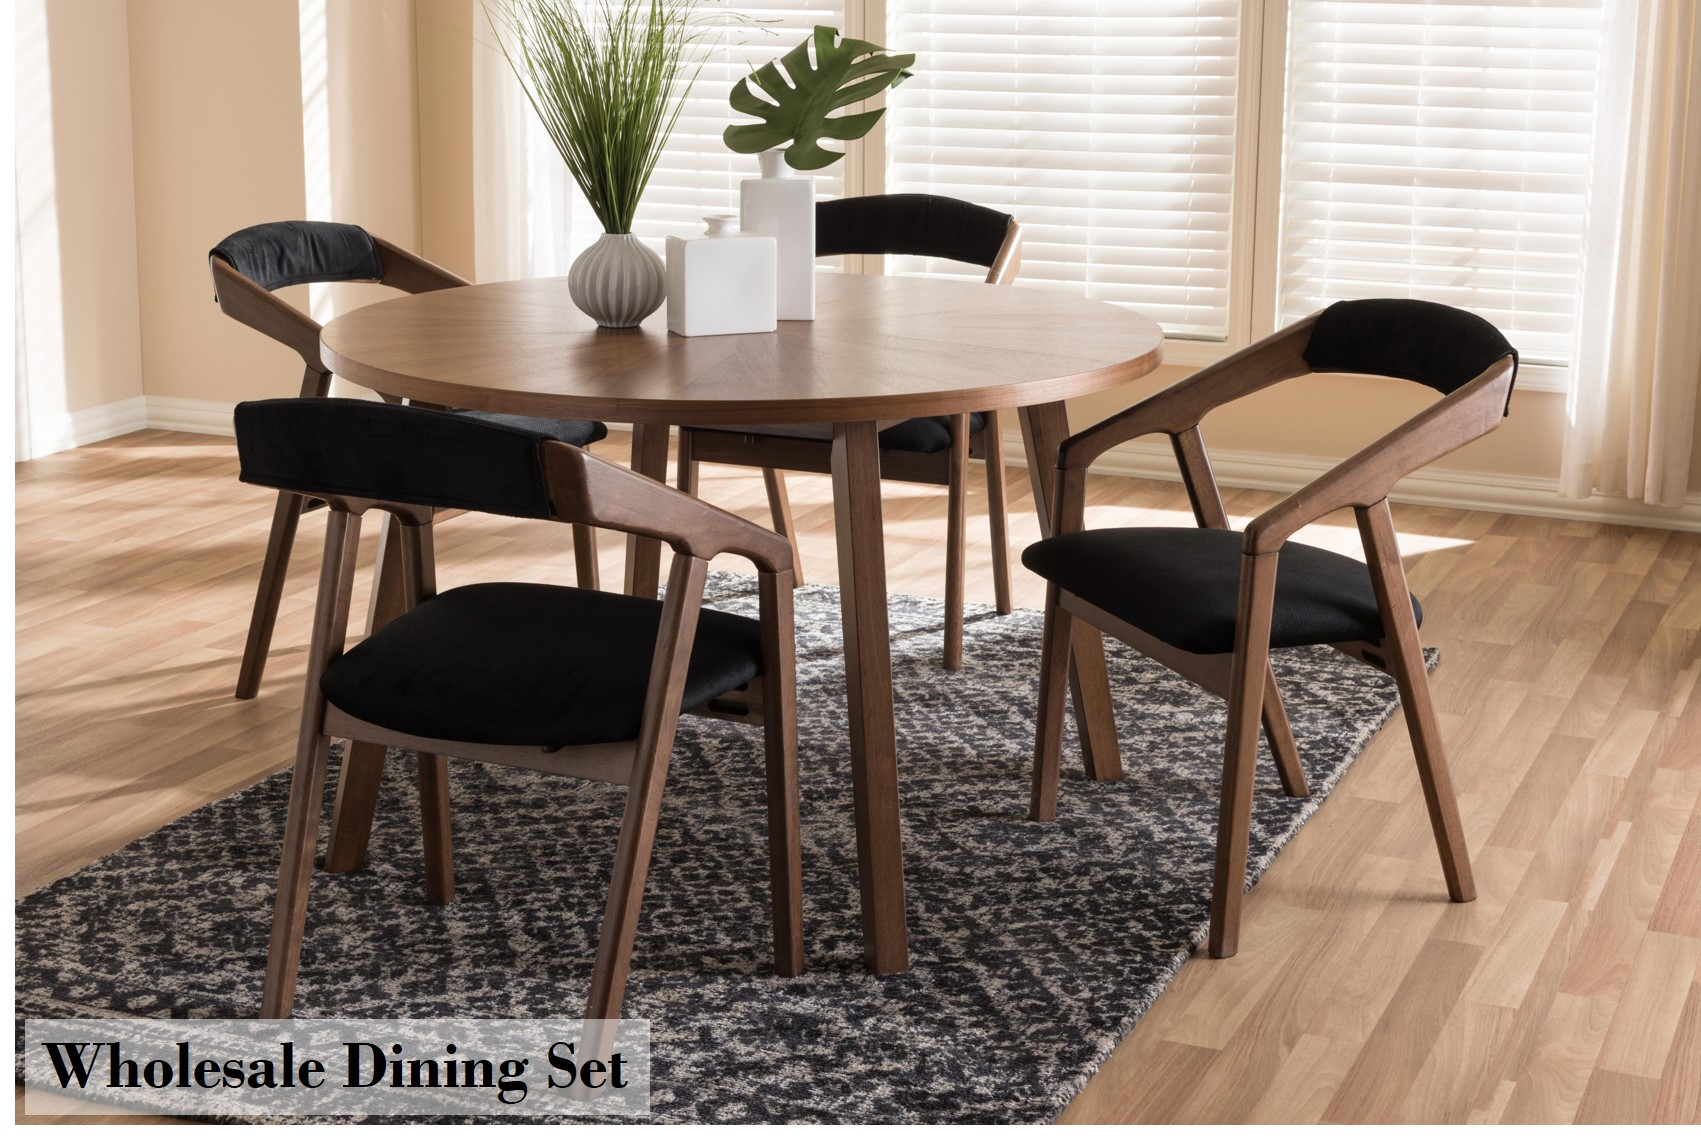 wholesale chairs and tables in los angeles upholstered office furniture restaurant commercial